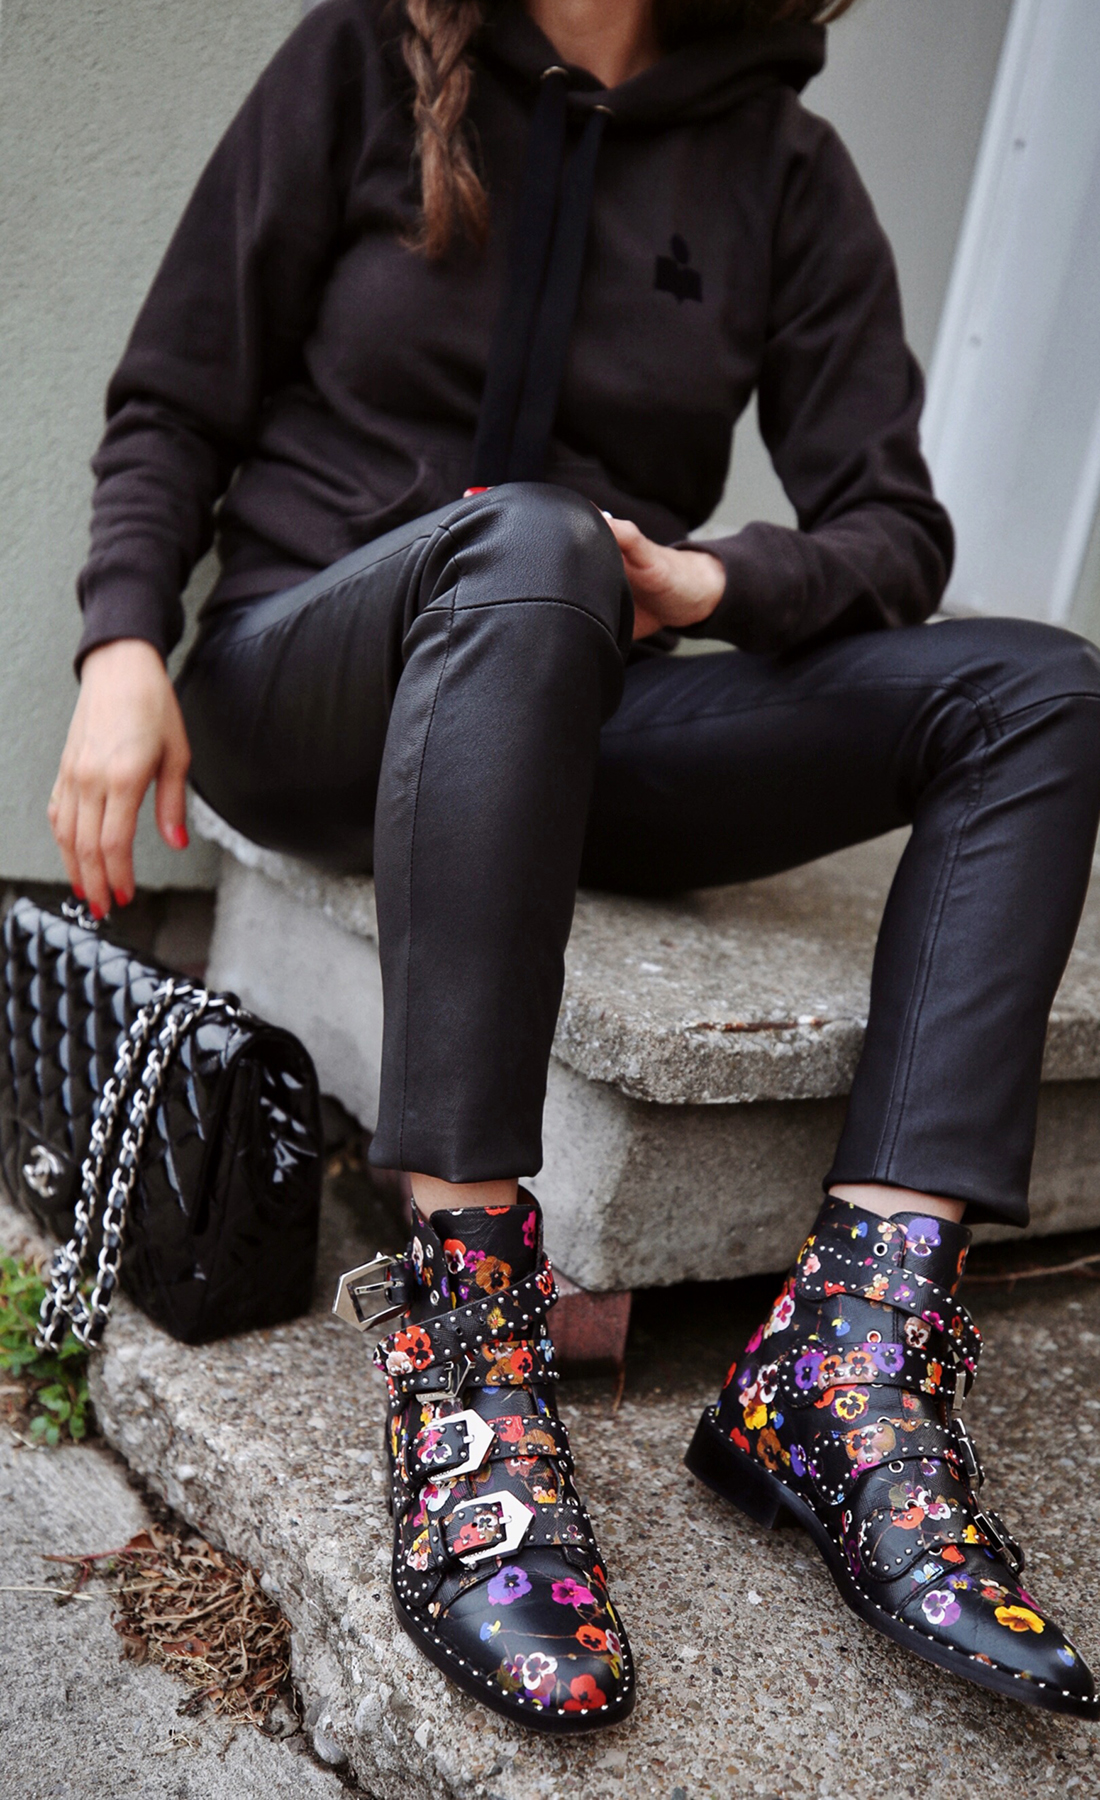 Isabel Marant Malibu Hoodie, Mackage leather jeans pants, Givenchy floral studded Elegant Line boots, Chanel patent leather flap bag - street style - woahstyle.com, nathalie martin 1.JPG